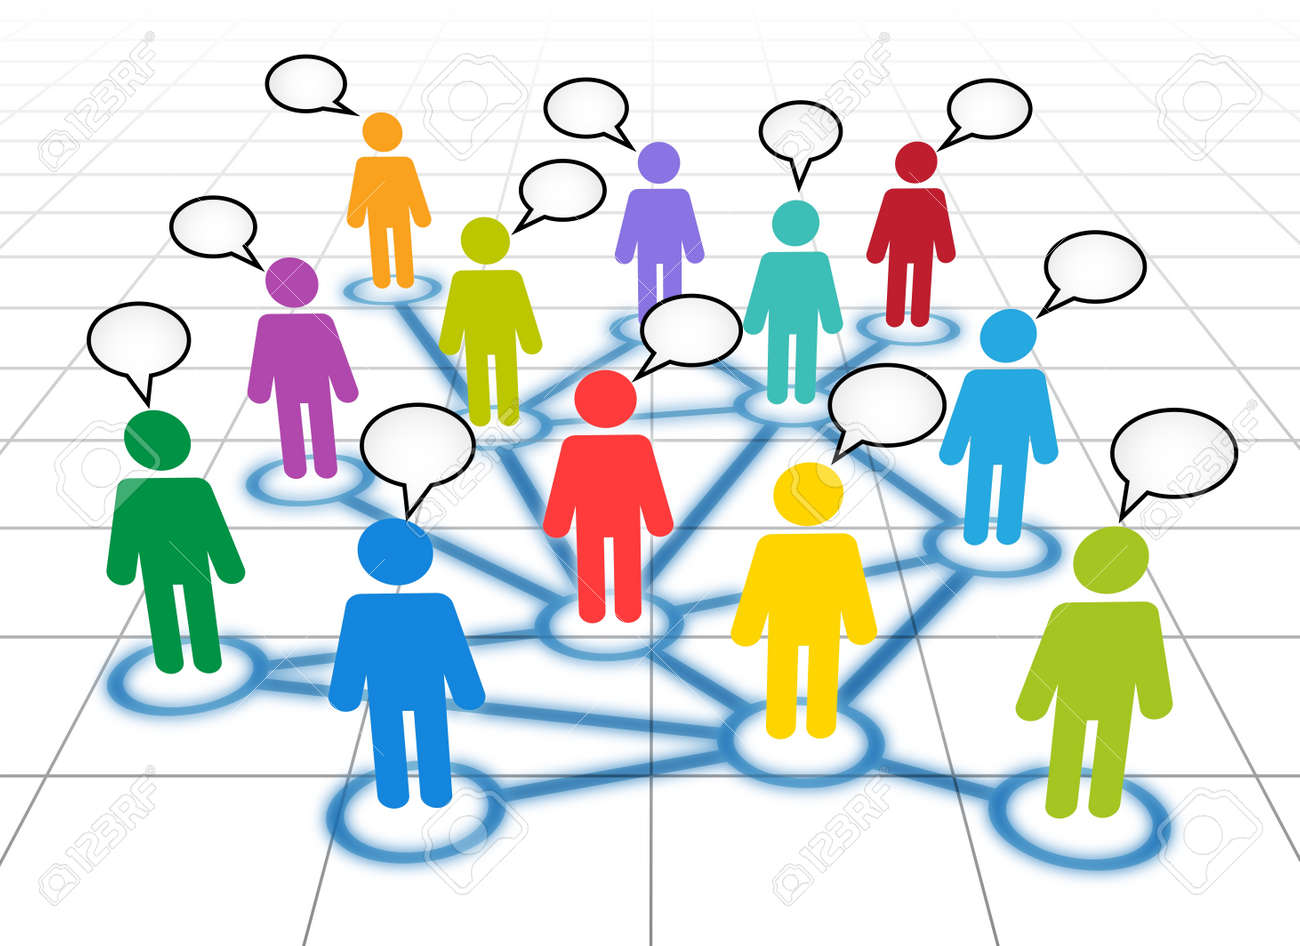 Schematic view of a social networking members with blank text clouds Stock Vector - 10932233